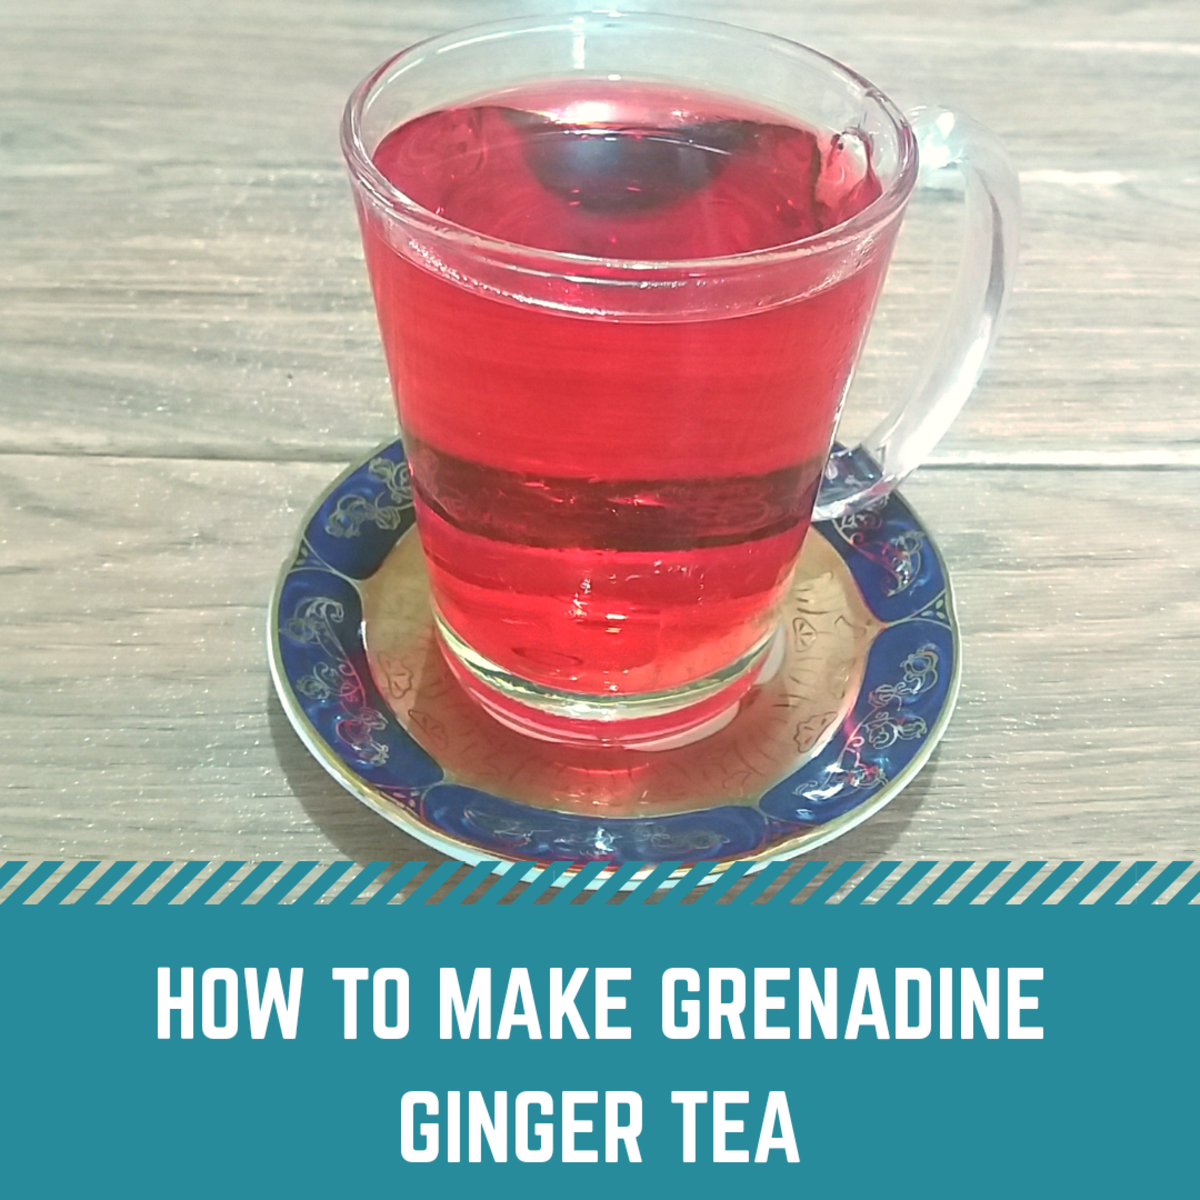 How to Make Grenadine Ginger Tea